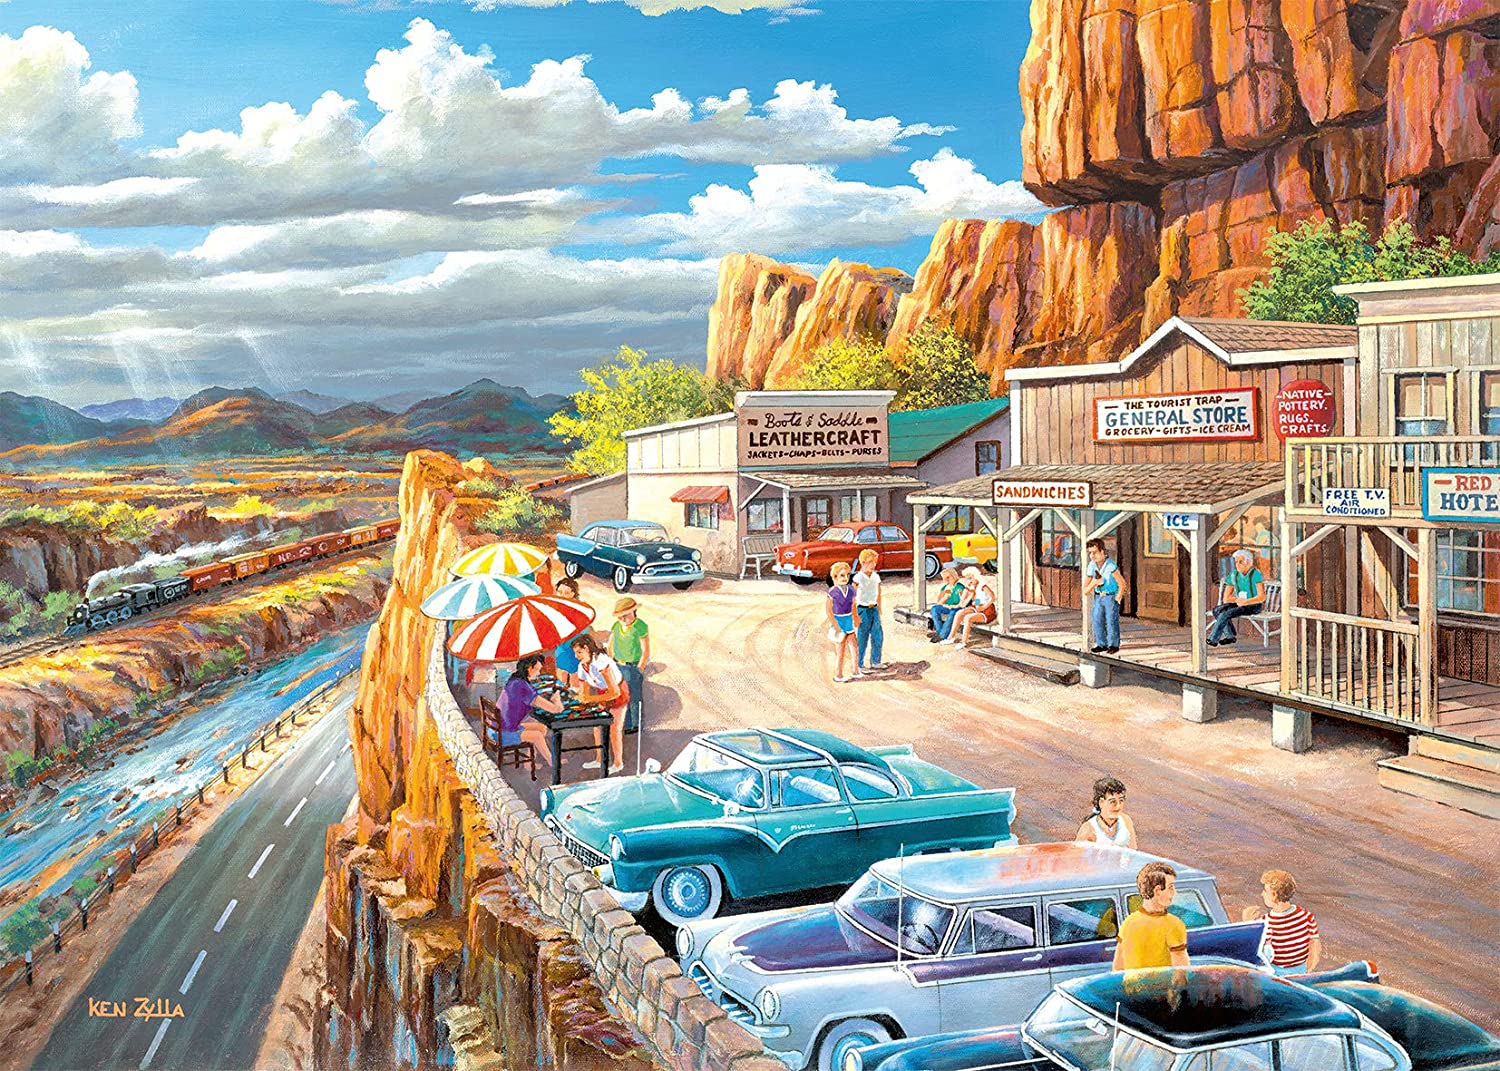 Ravensburger 16441 Scenic Overlook 500 Piece Large Pieces Jigsaw Puzzle for Adults - Every Piece is Unique, Softclick Technology Means Pieces Fit Together Perfectly